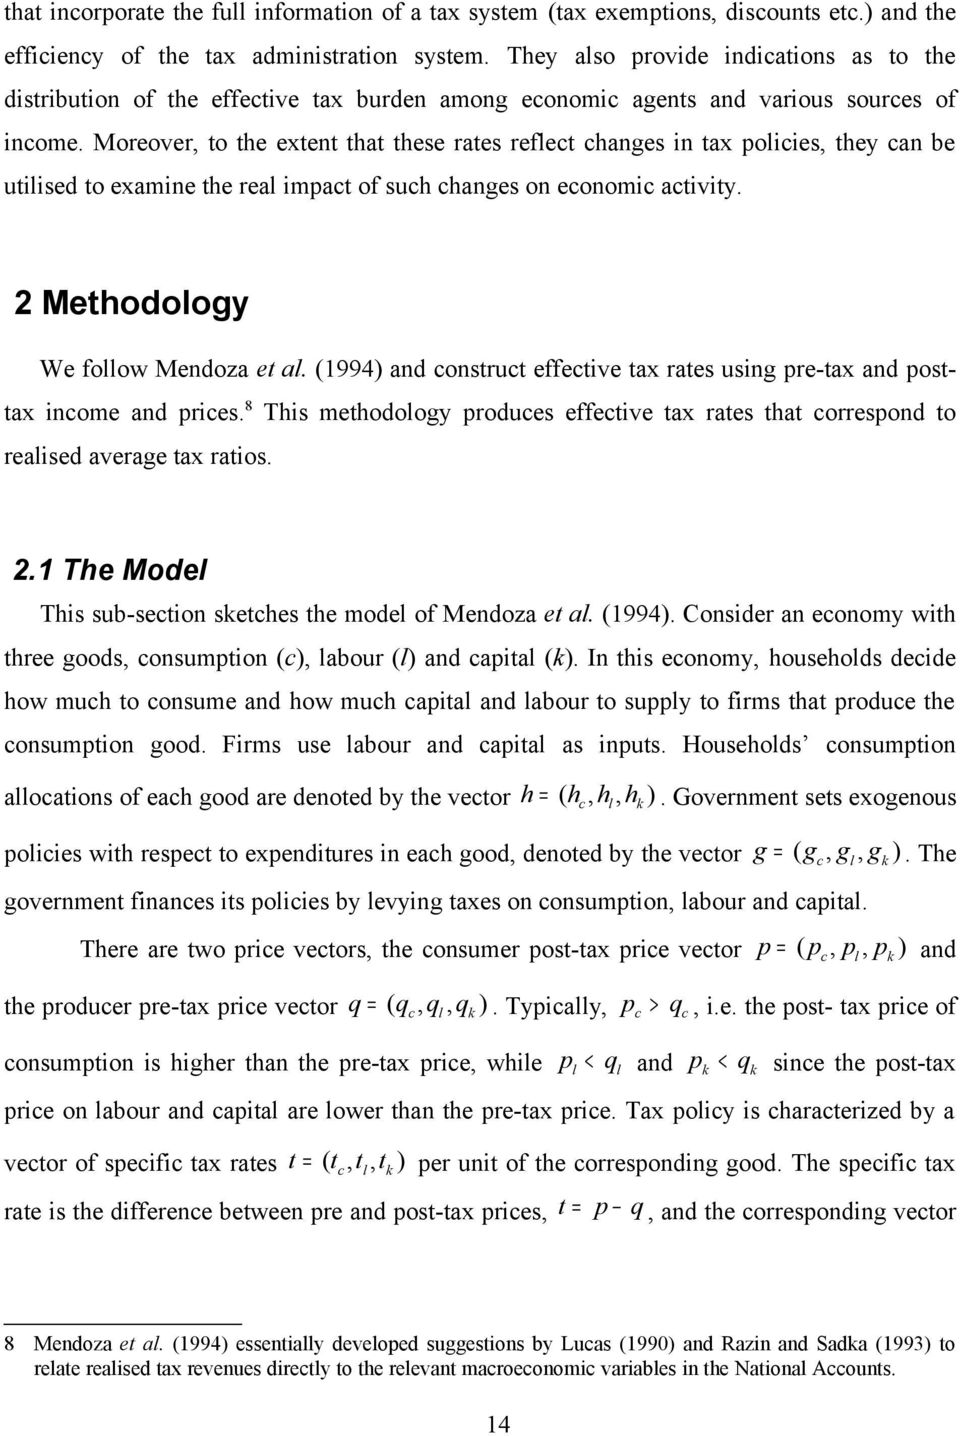 Moreover, to the extent that these rates reflect changes in tax policies, they can be utilised to examine the real impact of such changes on economic activity. 2 Methodology We follow Mendoza et al.